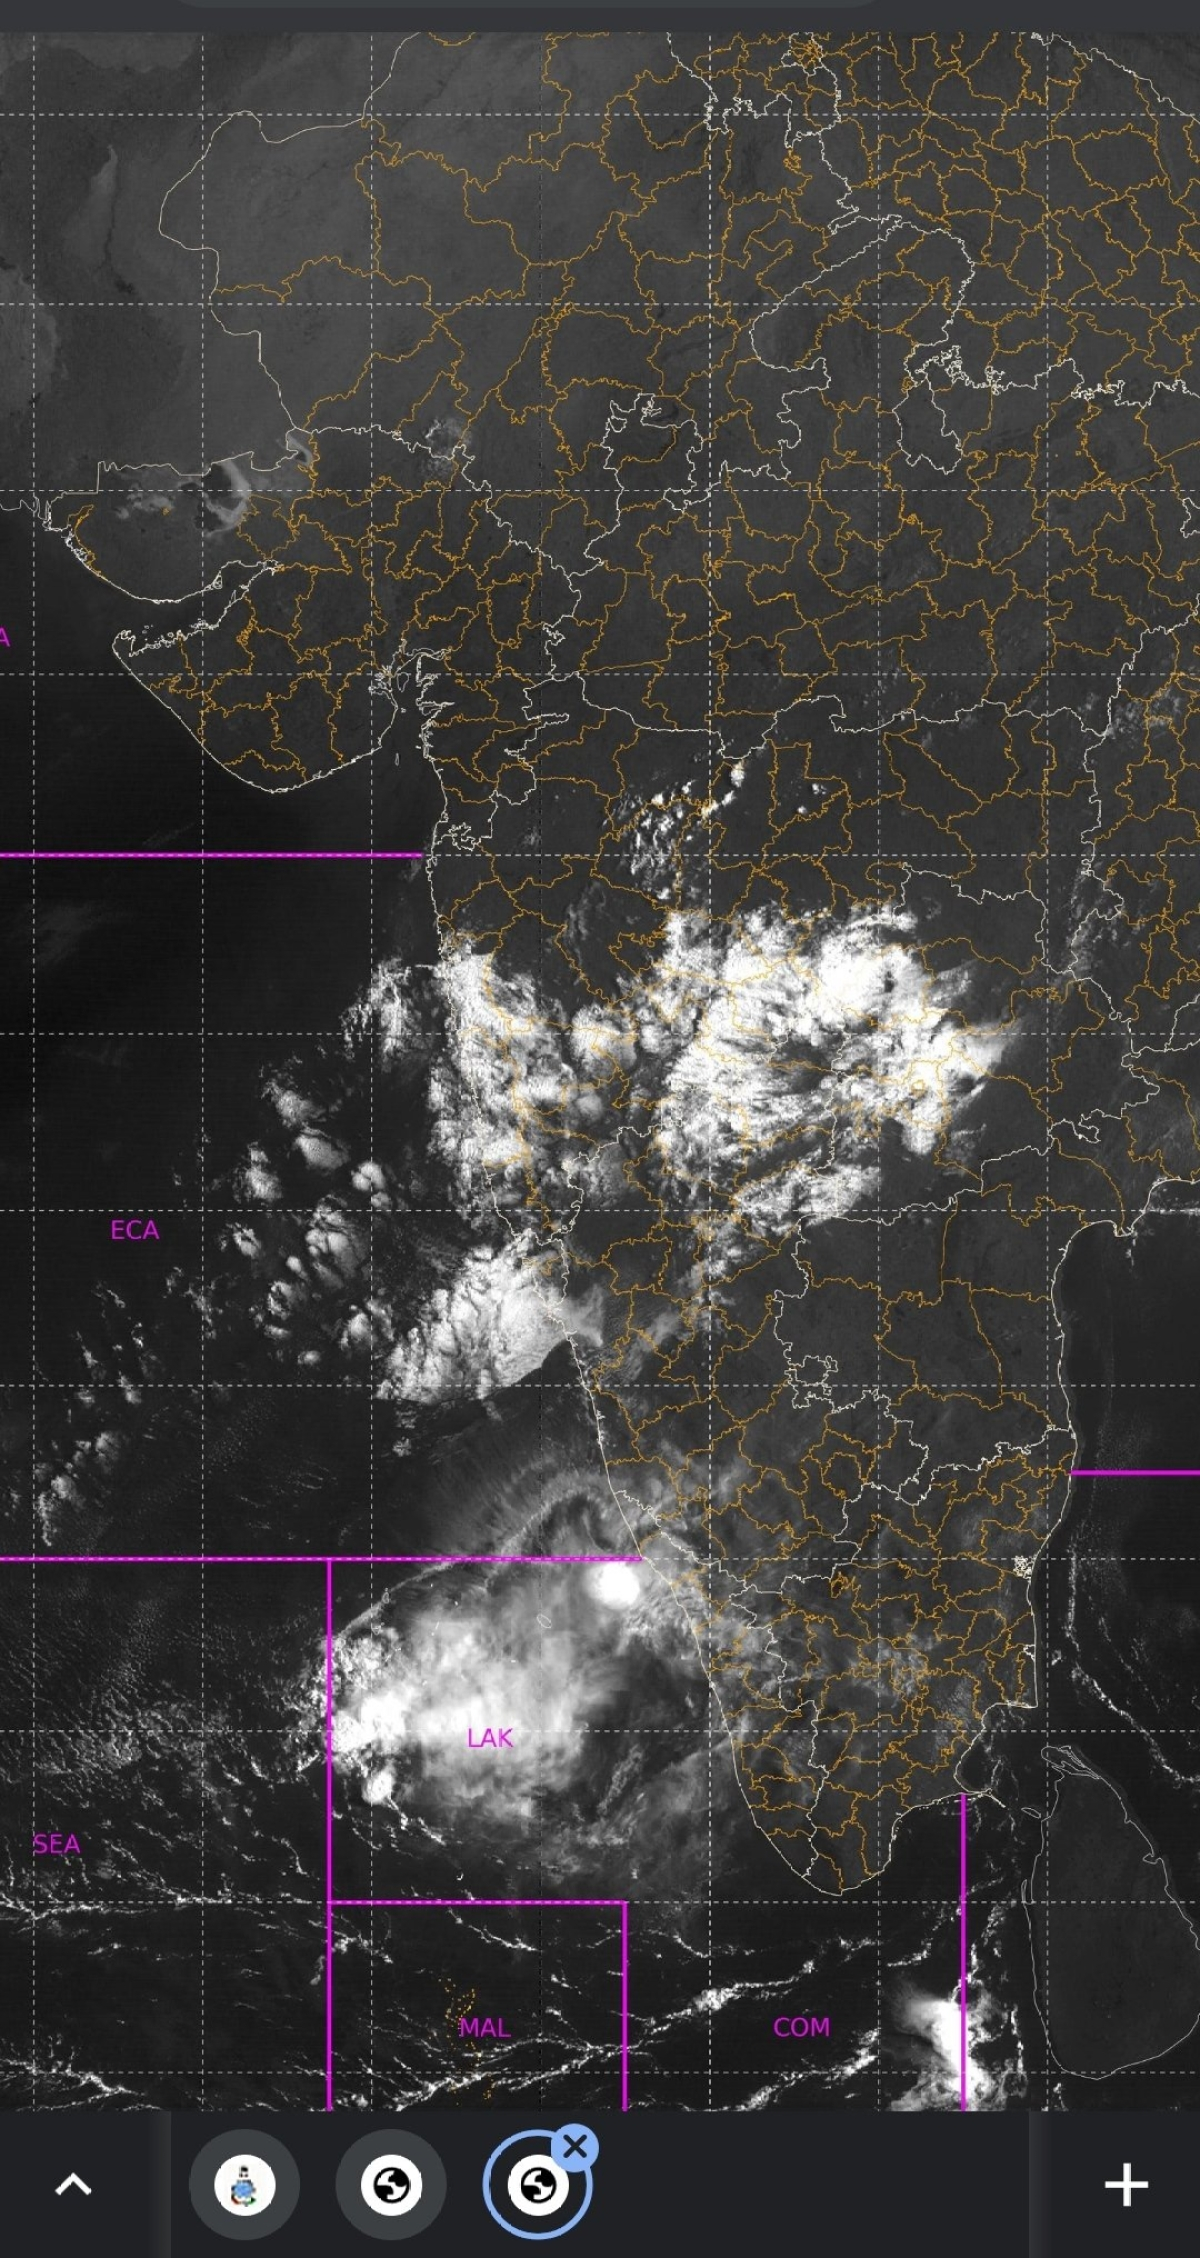 Mumbai Weather Update: IMD foresees isolated light rain for suburbs, adjoining areas on Thursday